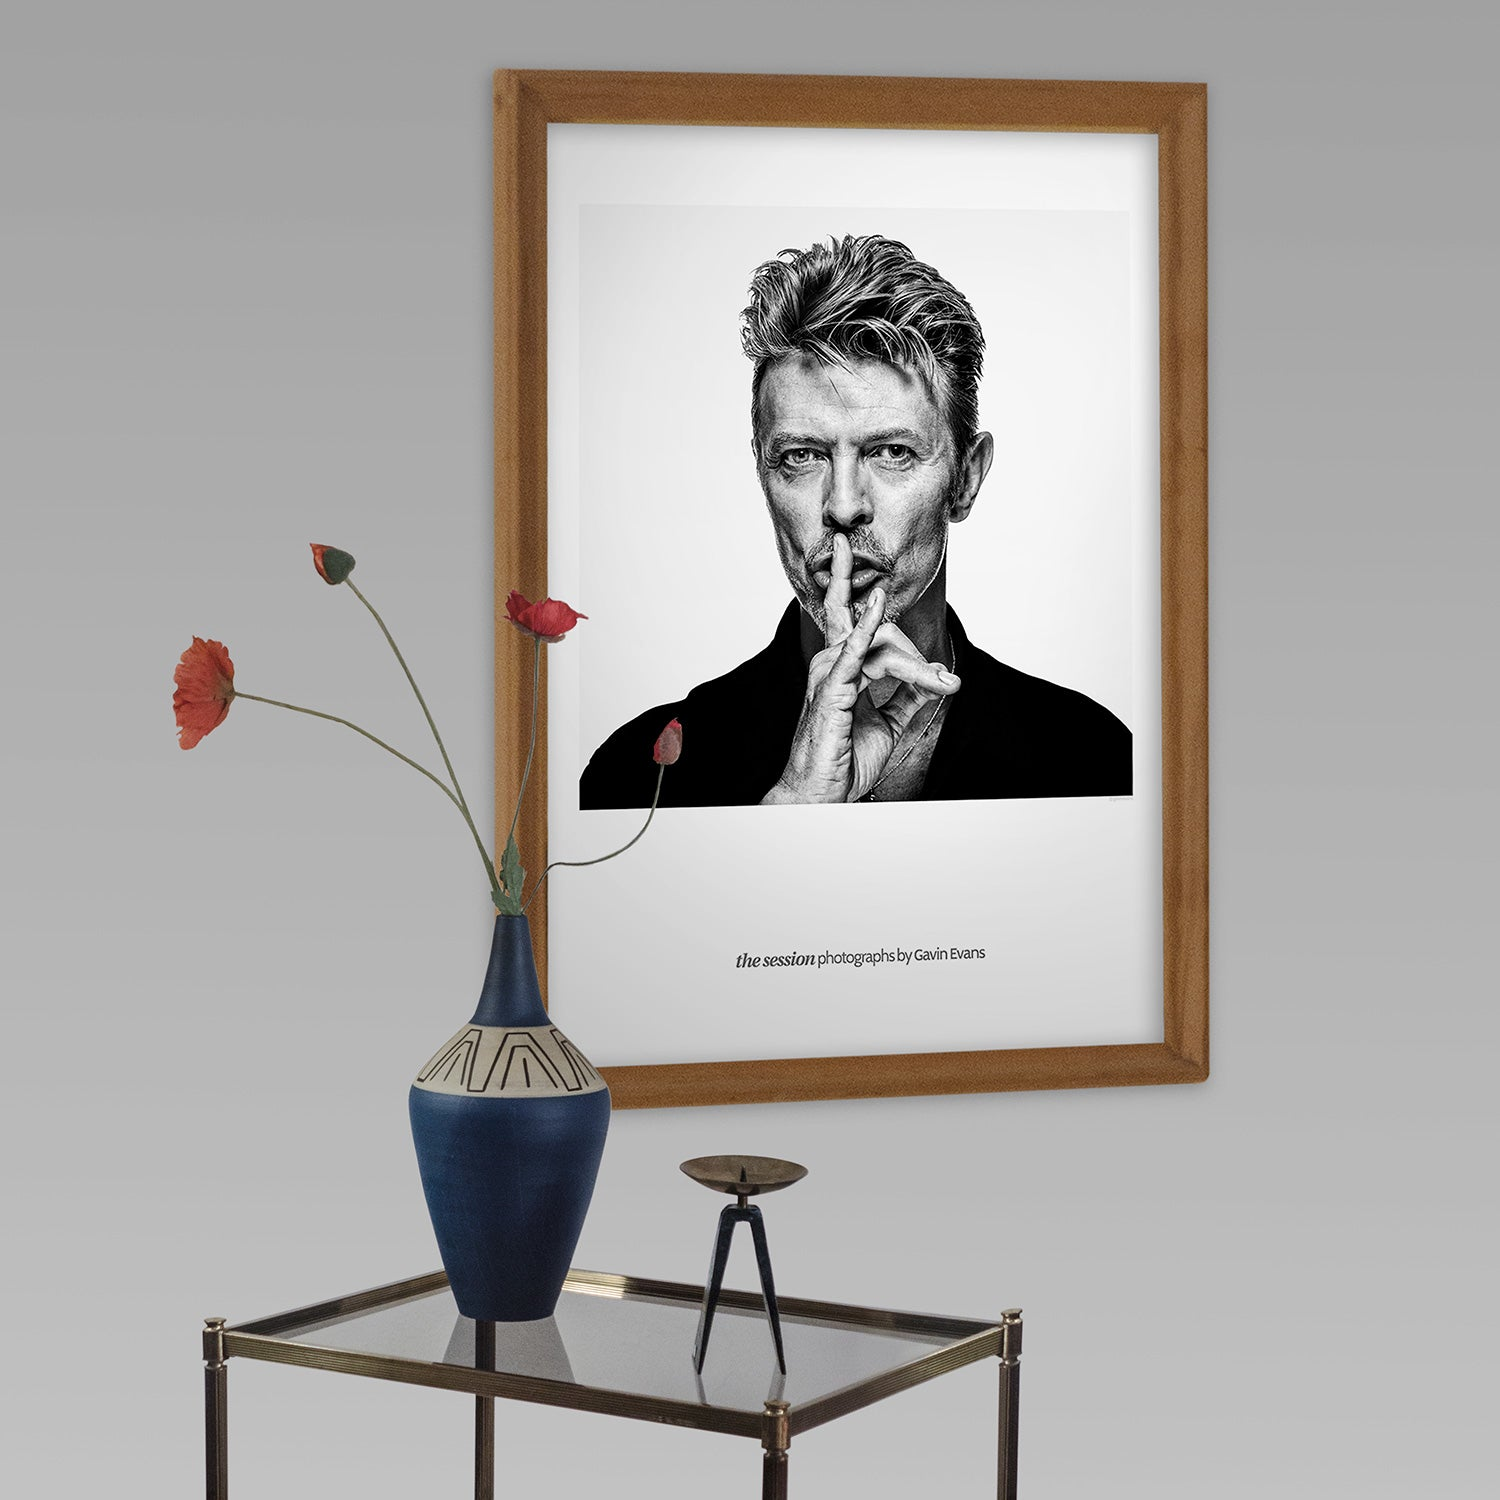 Beautiful Gallery Lithograph of David Bowie by renowned portrait photographer Gavin Evans